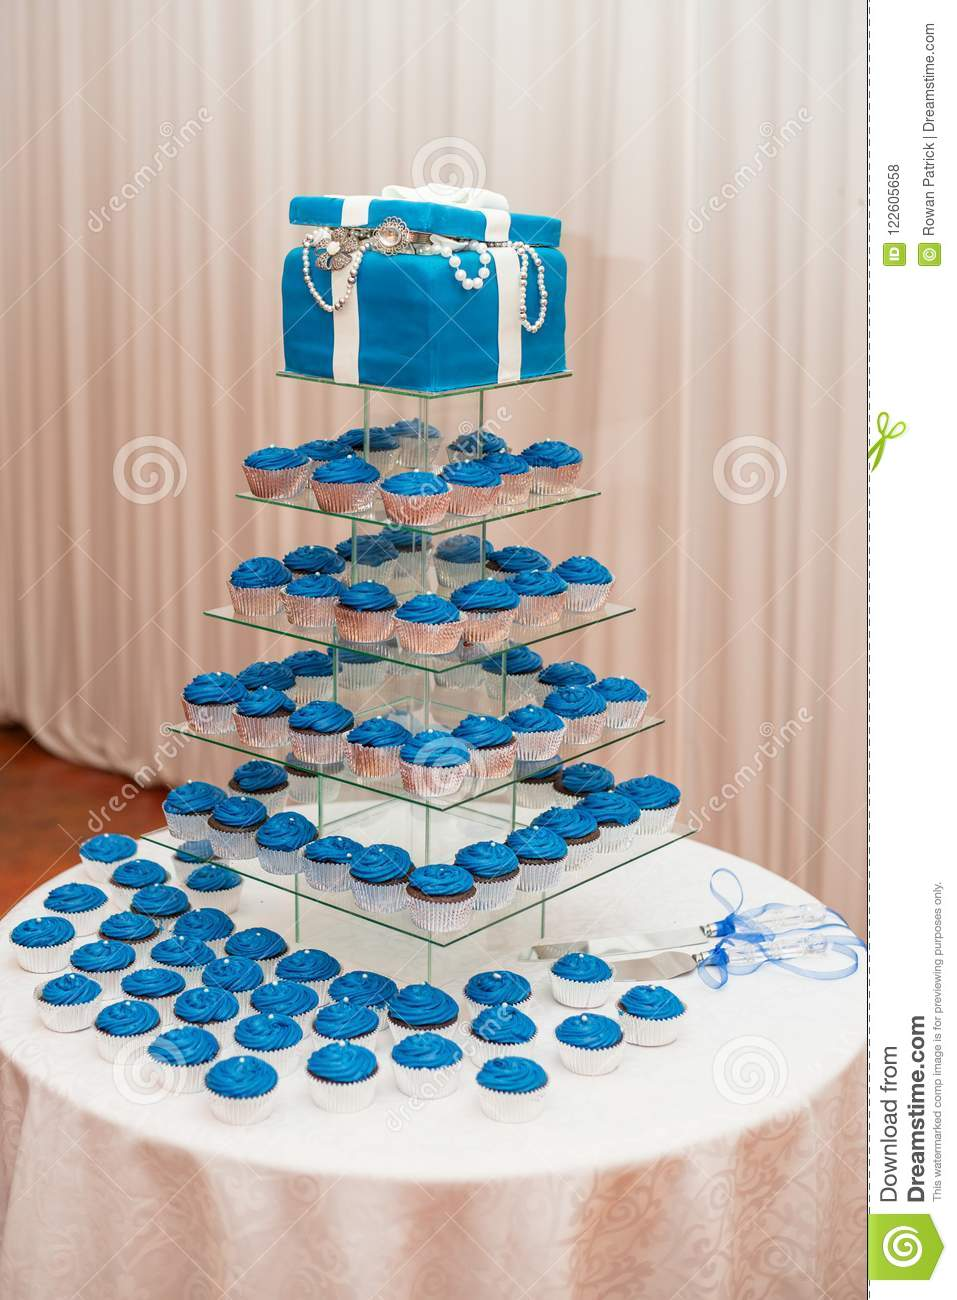 Blue Cake And Cupcakes Stock Photo Image Of Jewelery 122605658